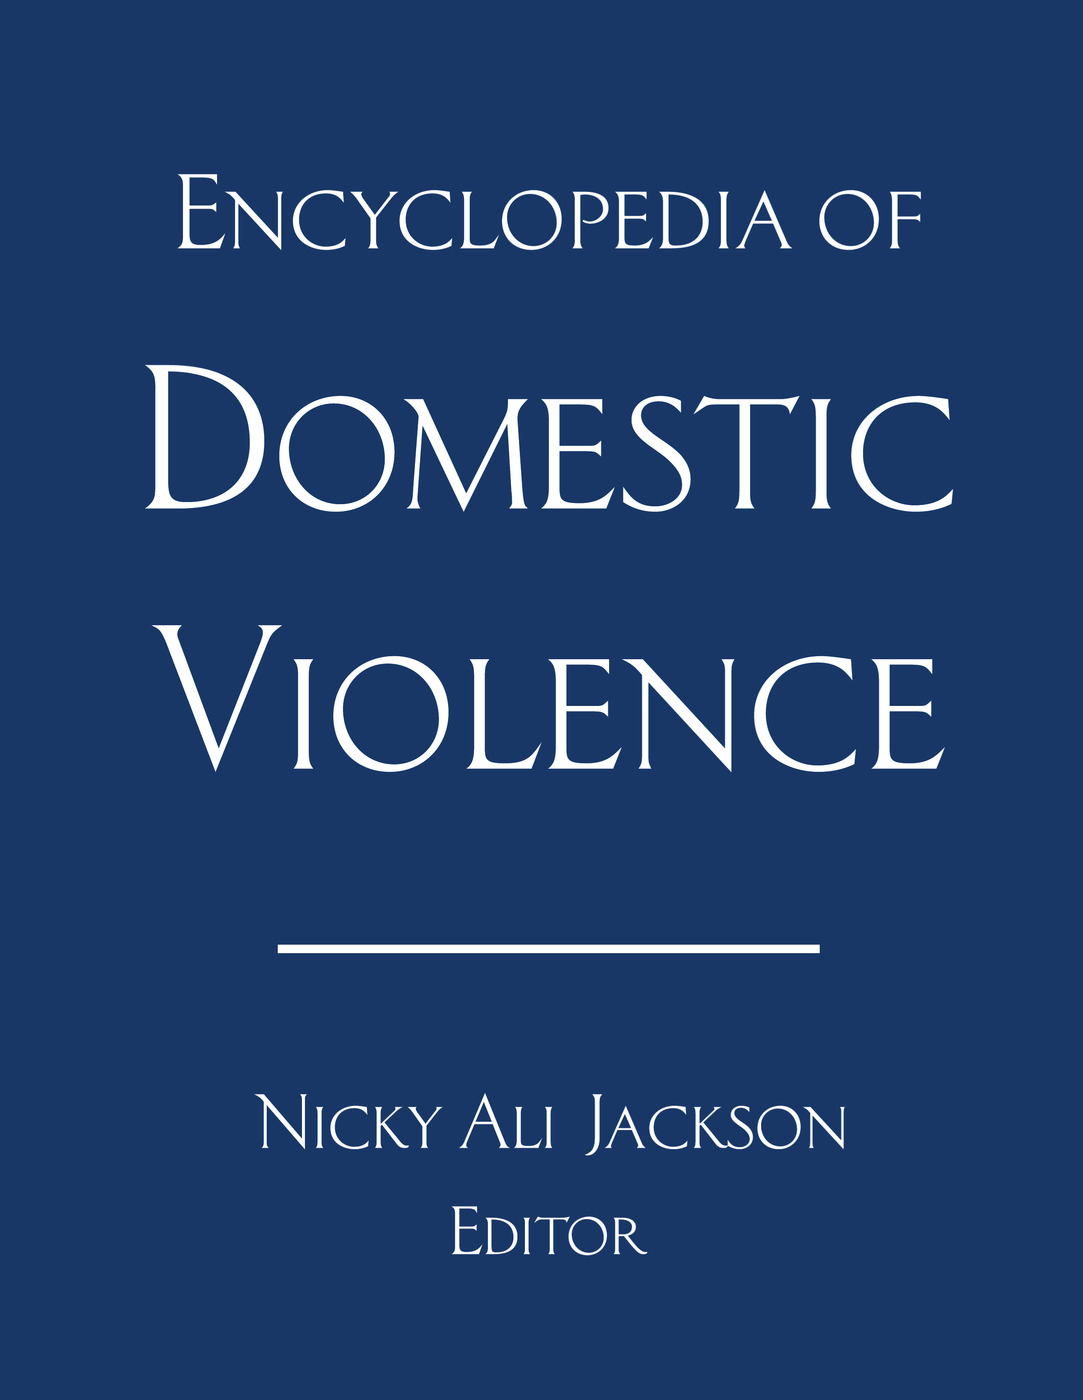 Encyclopedia of Domestic Violence (Paperback) book cover